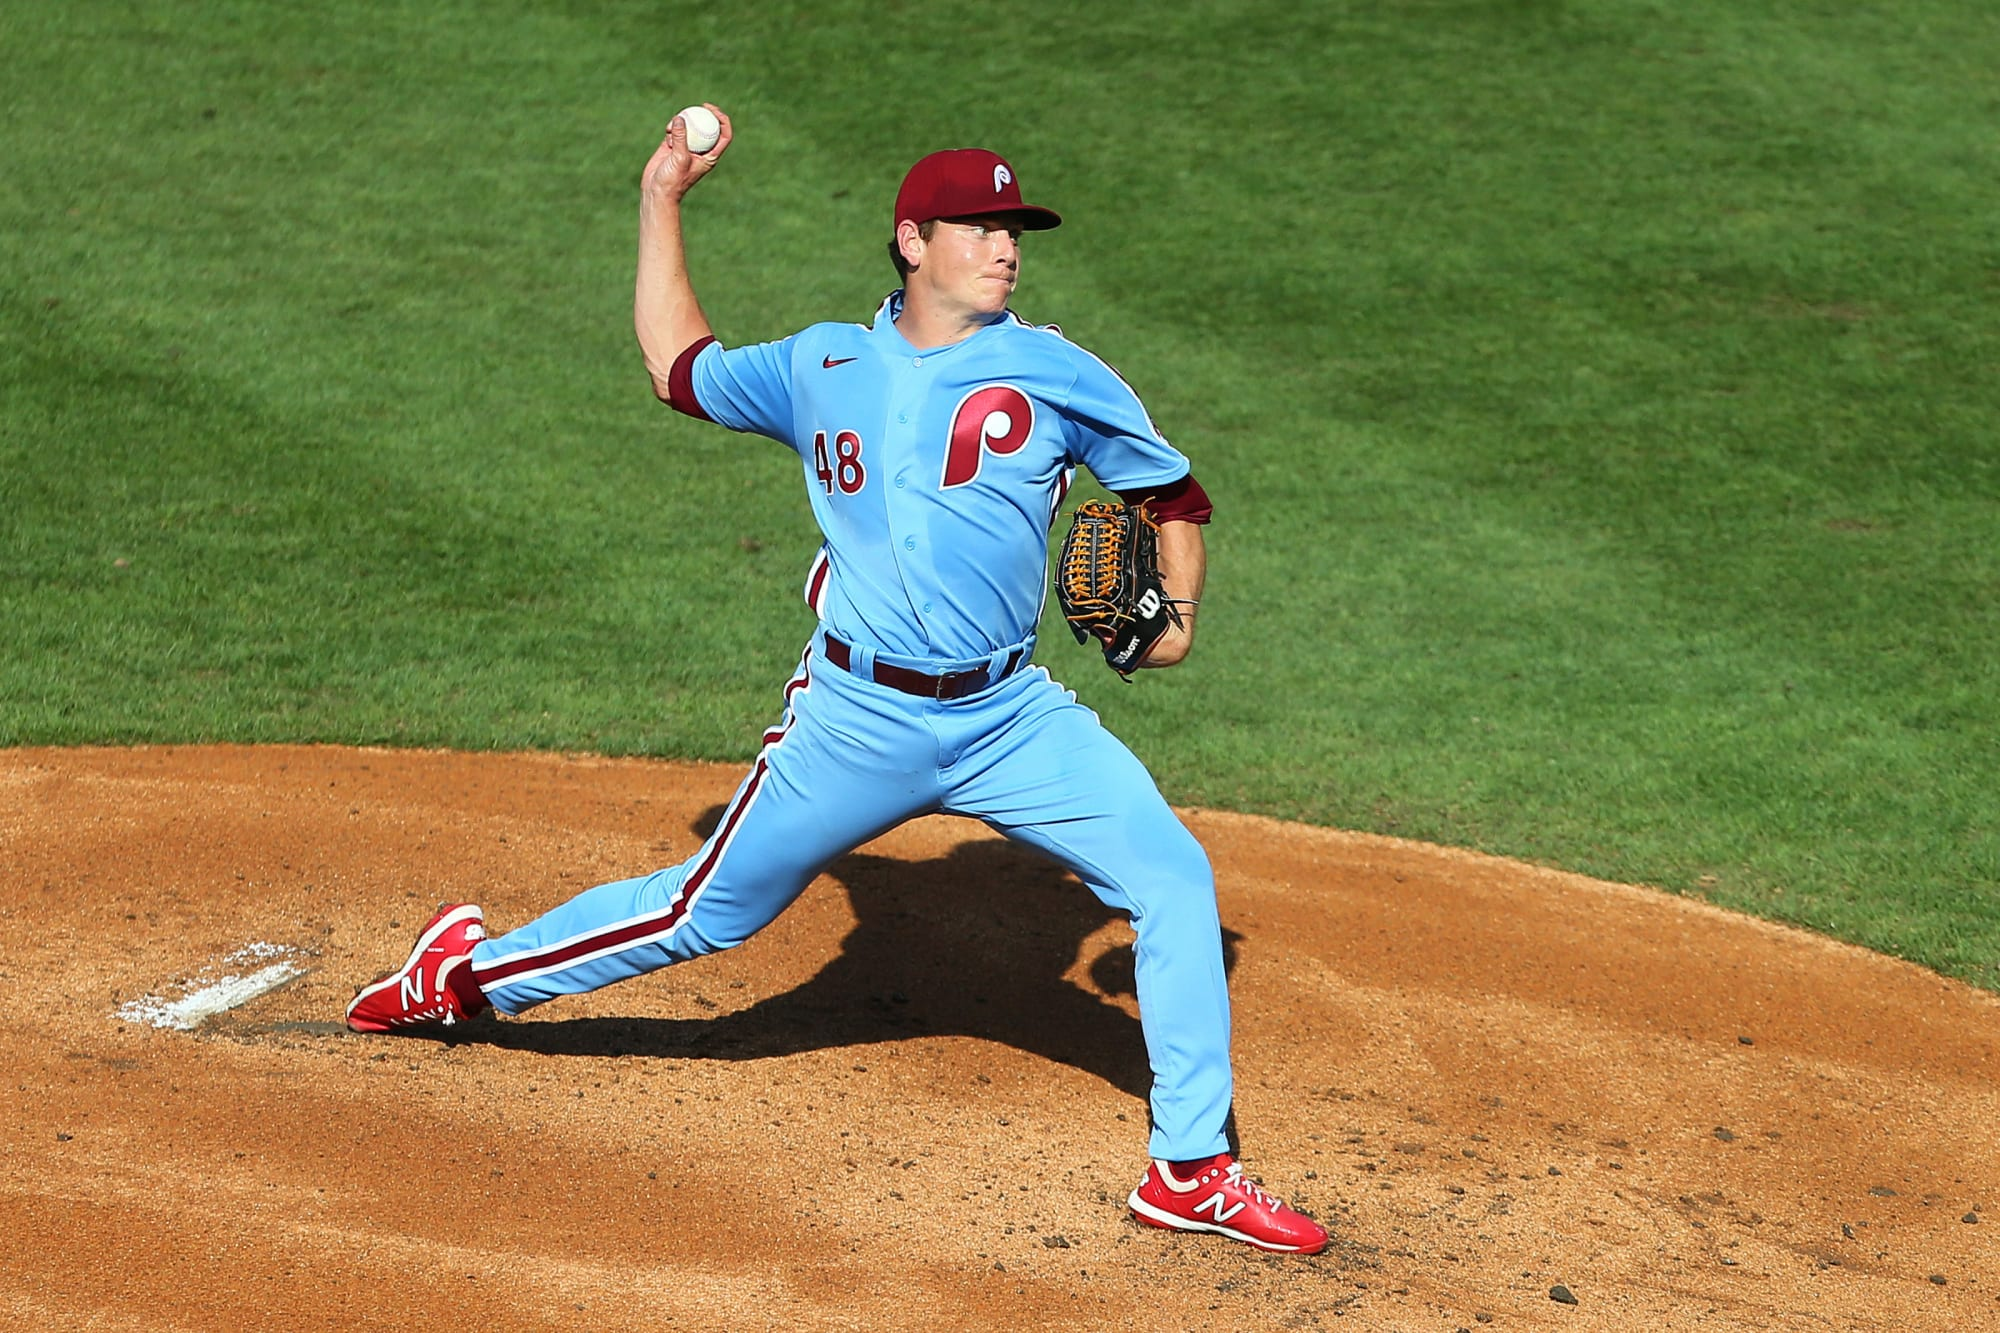 Phillies Game Today: Phillies vs Nationals Odds, Starting Lineup, Pitching Matchup, Predictions, Schedule, Live Stream and TV Channel